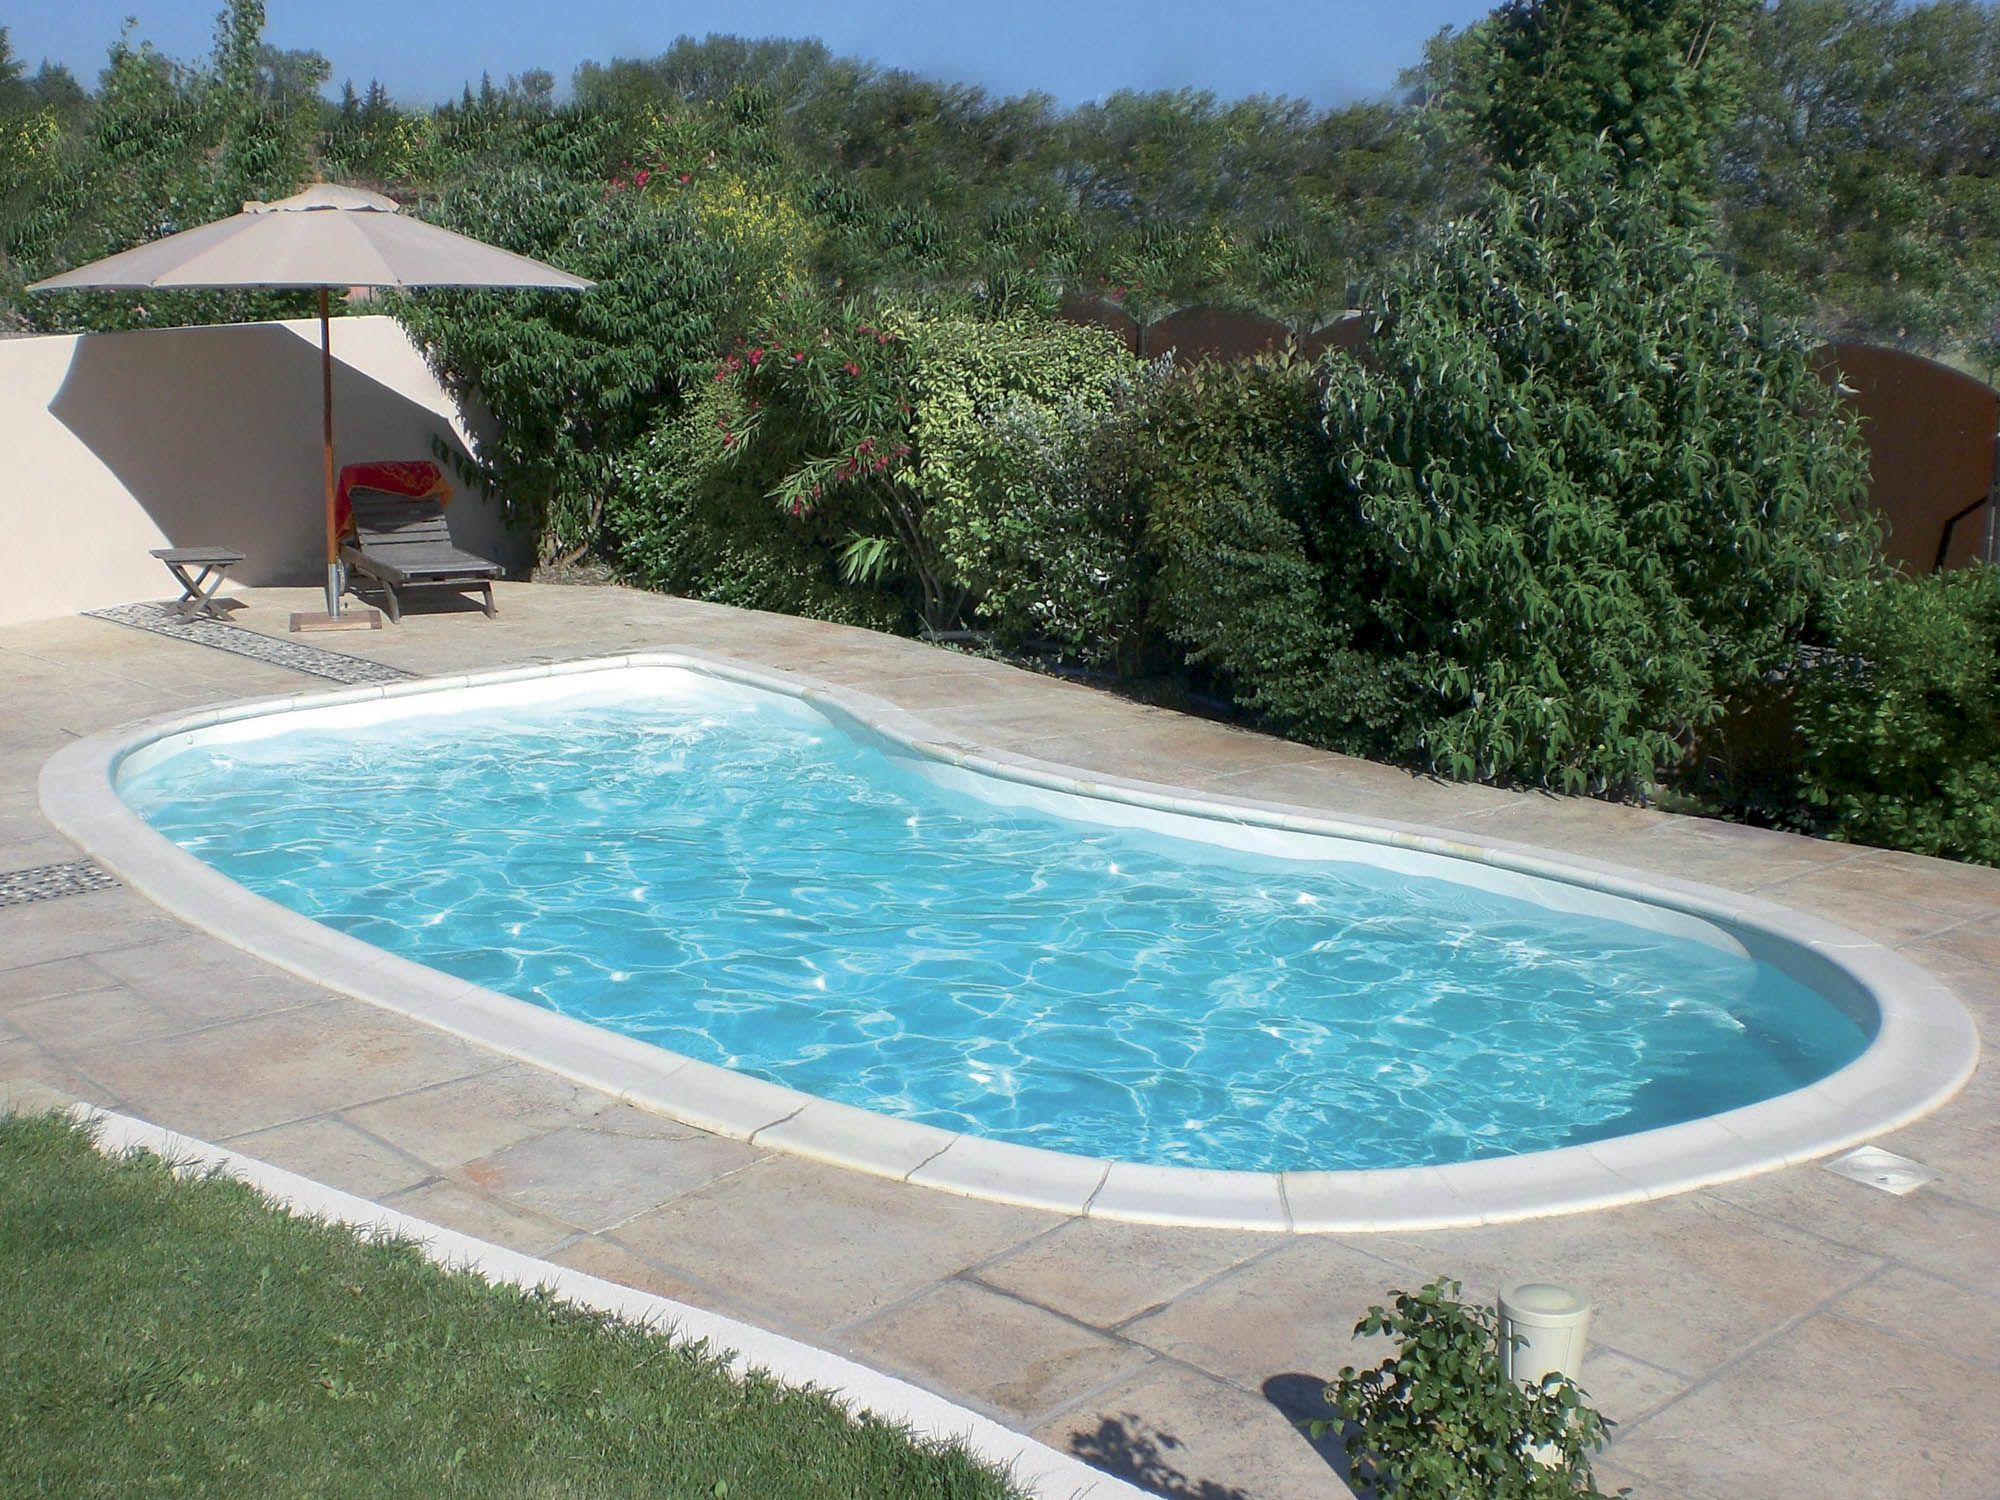 Piscine coque polyester ovation piscine haricot for Piscine avec coque